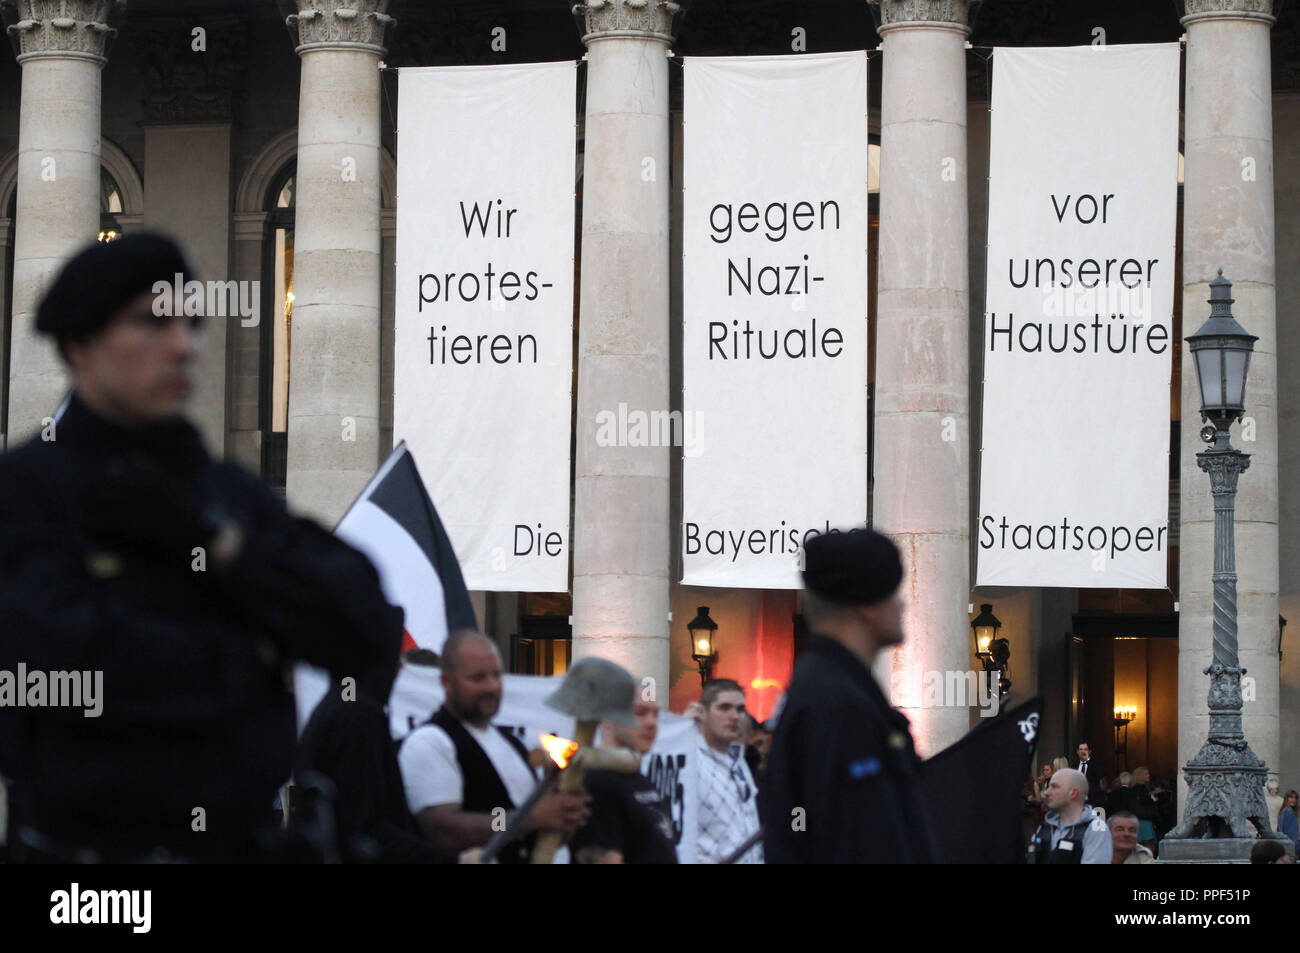 "The State Opera and the Residenz Theater protest against a neo-Nazi march. The right-wing extremists commemorate the anniversary of the death of one of their comrades, Reinhold Elstner, who set himself on fire in 1995 to protest against the Wehrmacht exhibition. Above the entrance of the opera there are long white cloths bearing the inscription ""We protest against Nazi rituals at our doorstep - the Bavarian State Opera."" Stock Photo"